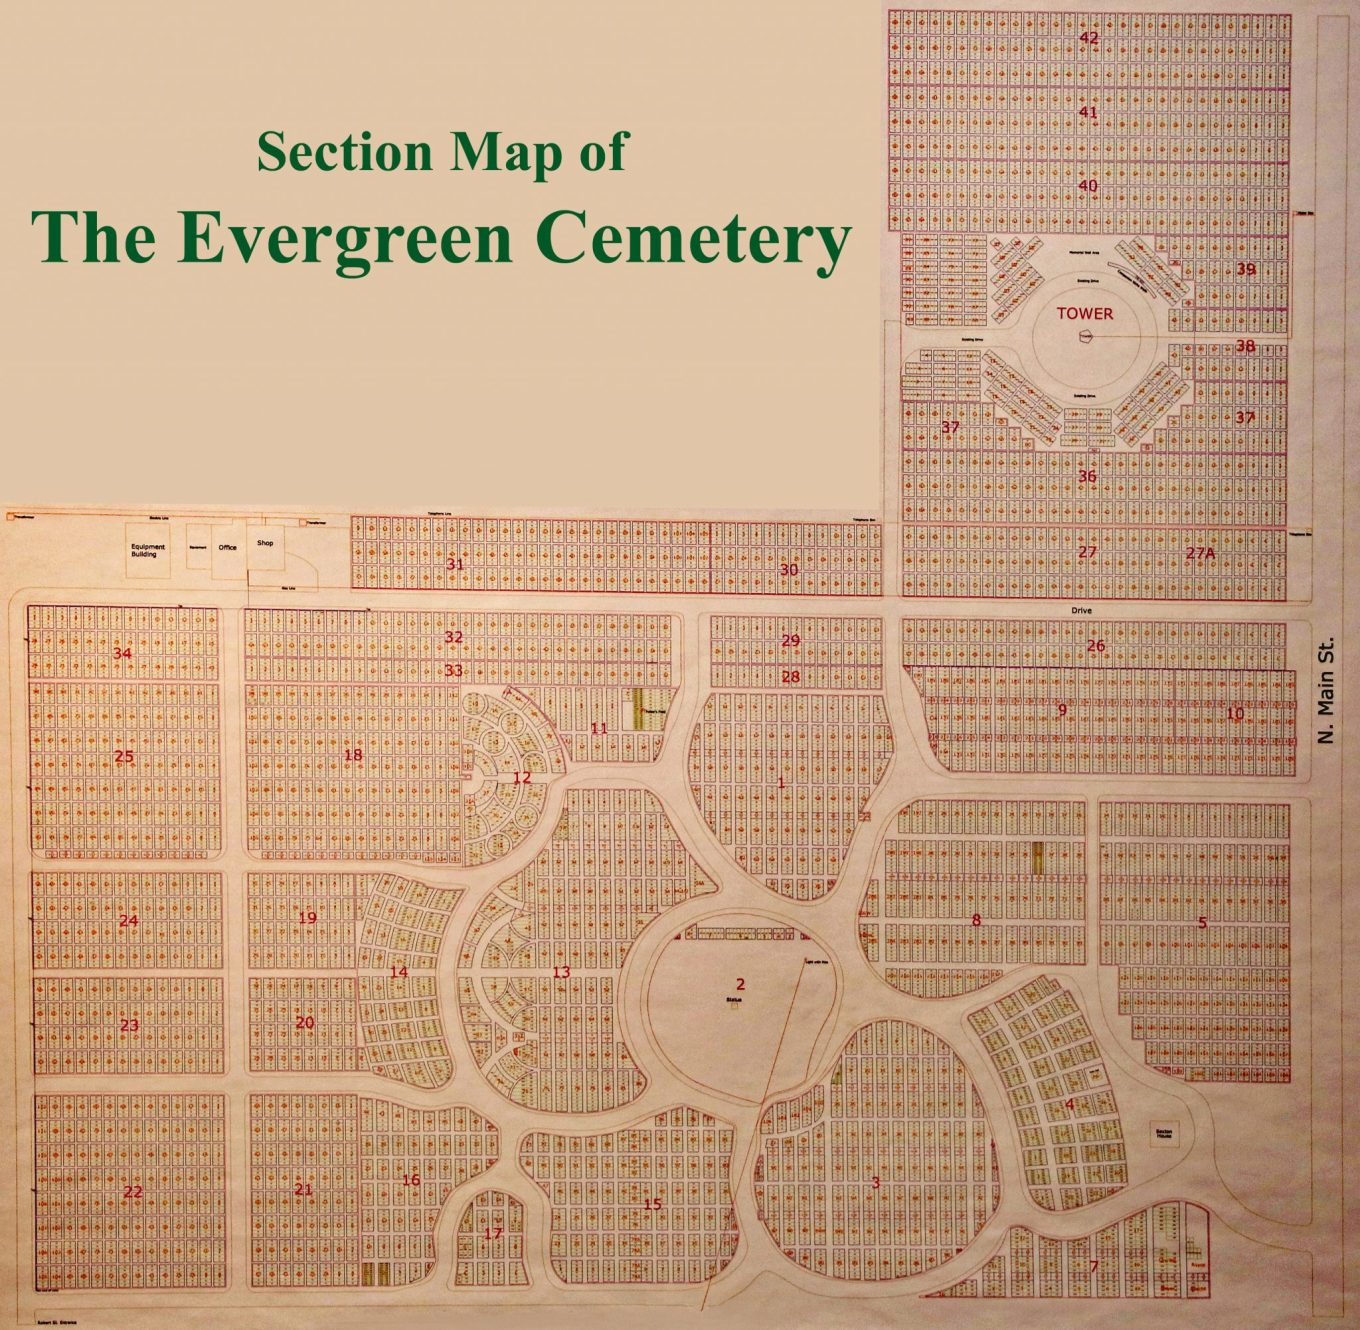 Section Map of the Evergreen Cemetery